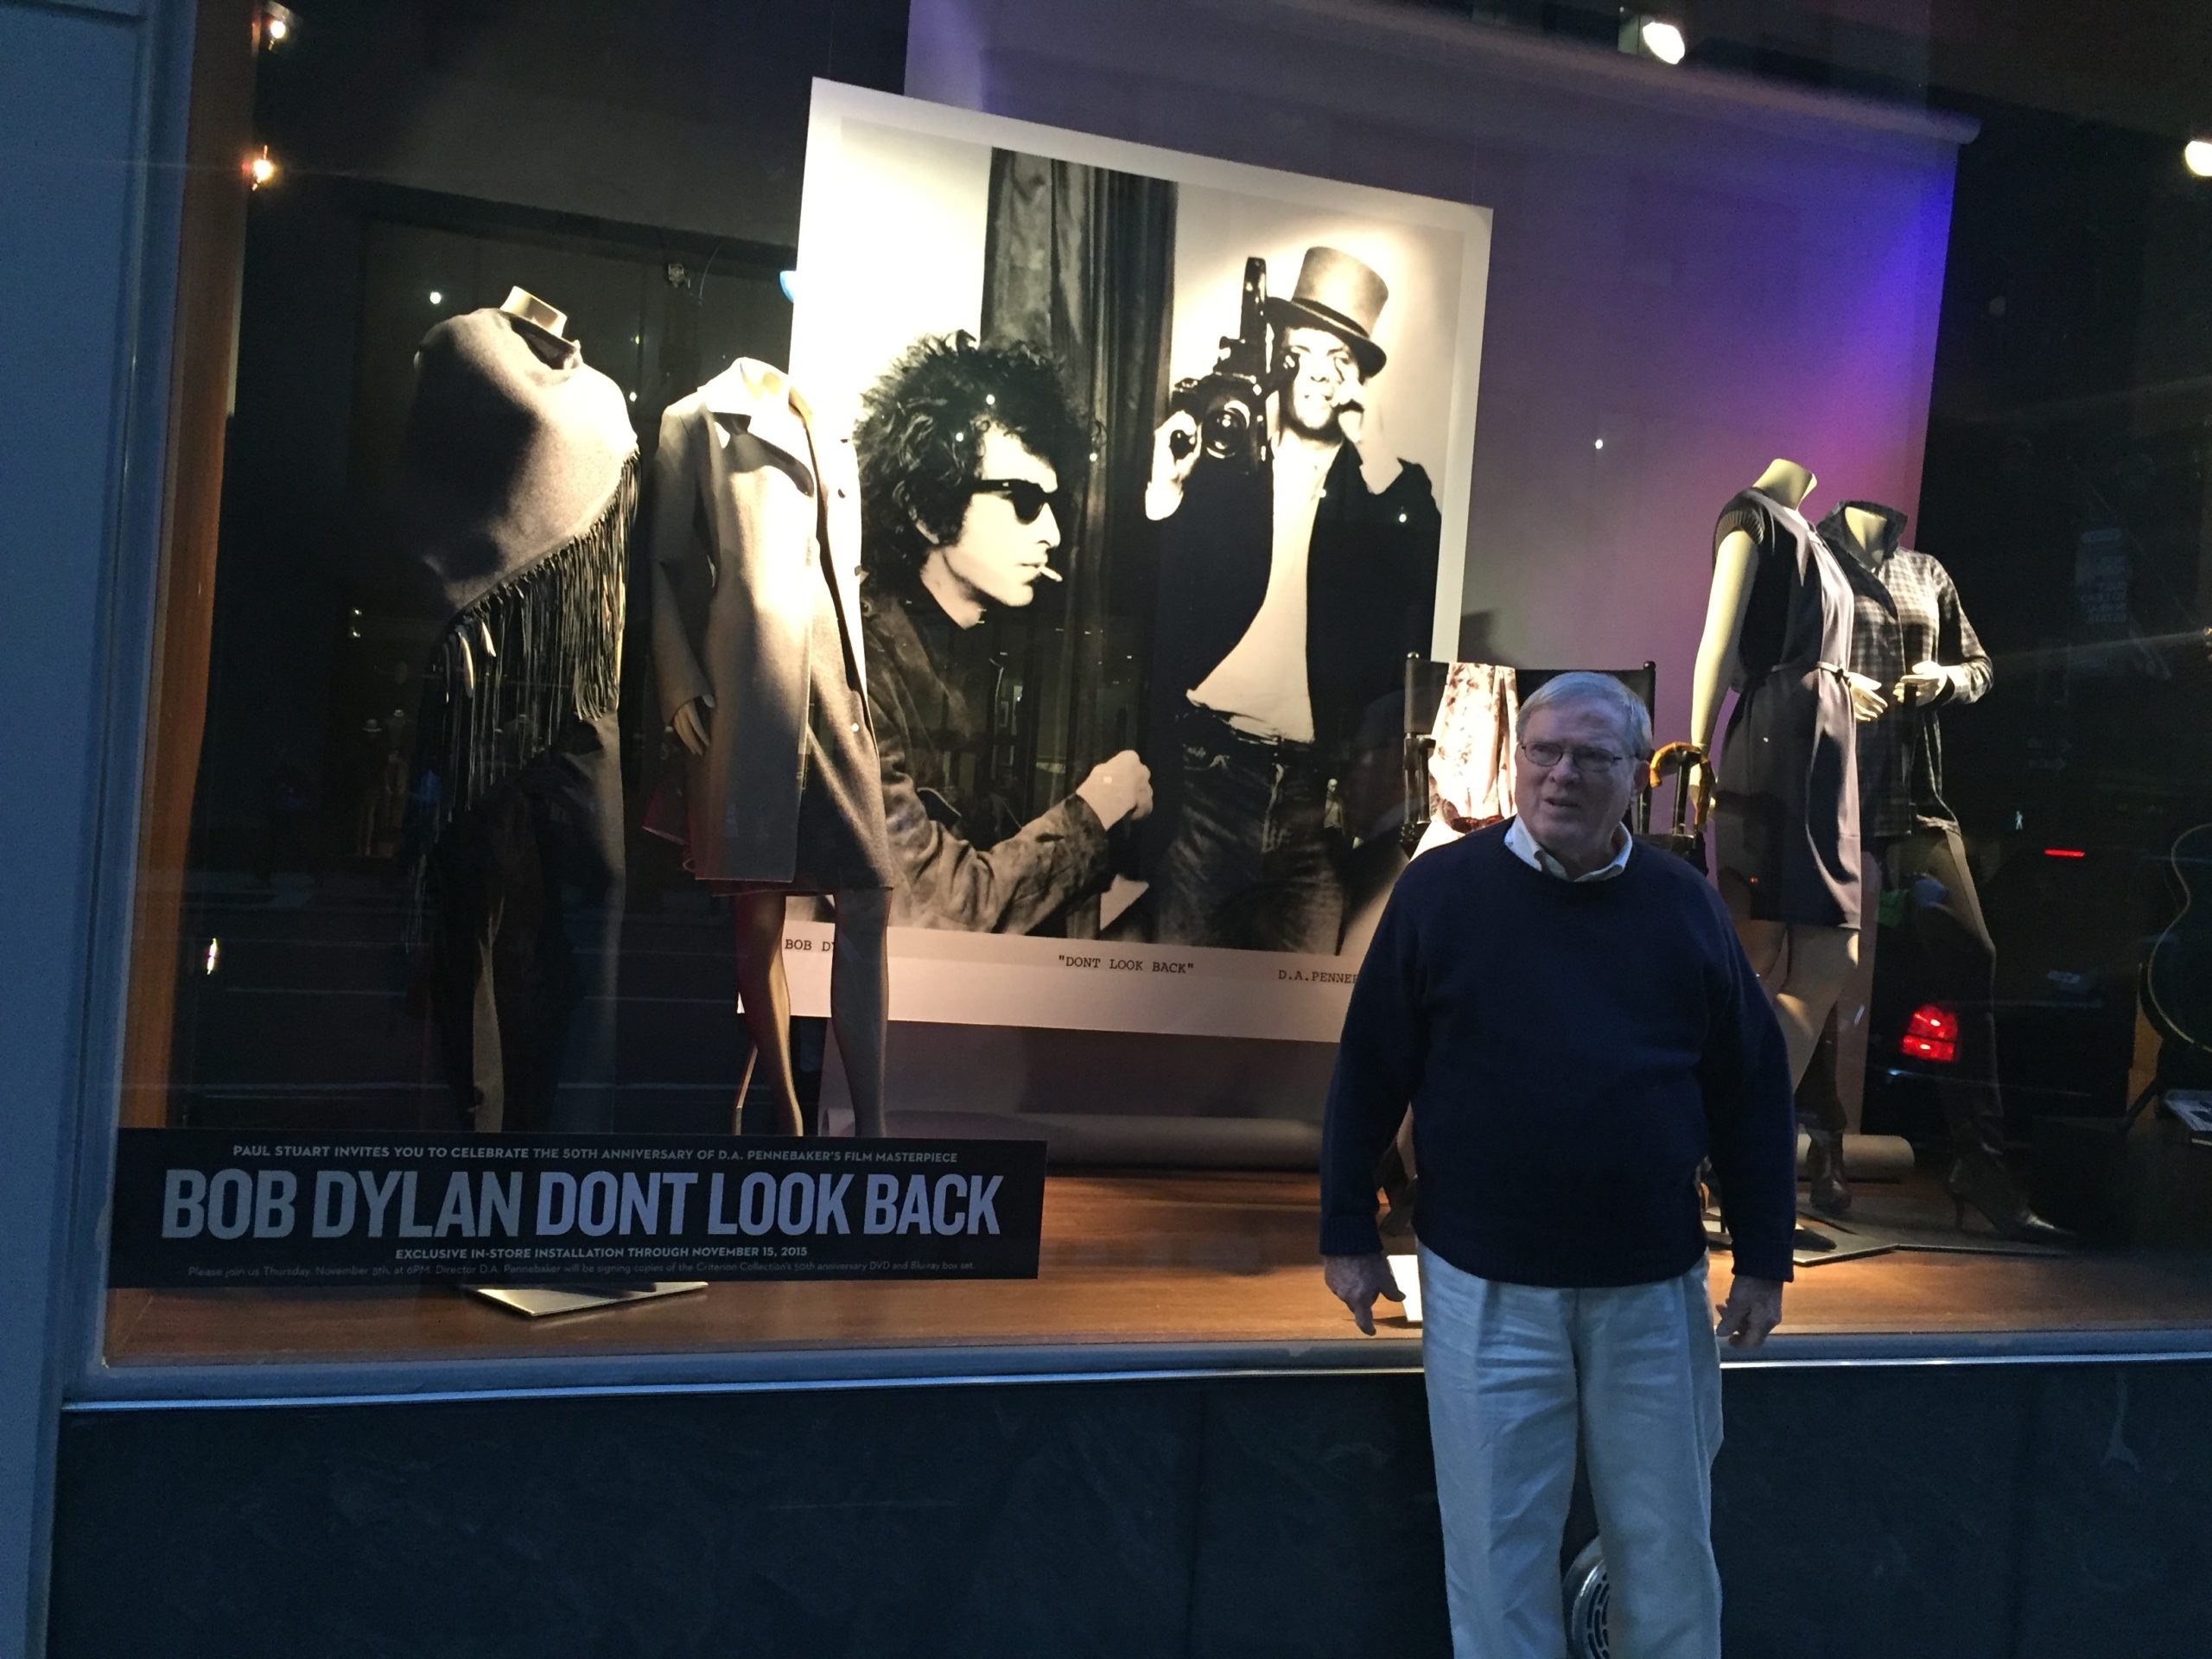 D.A. Pennebaker in front of the Paul Stuart store window on Madison Ave featuring Joseph's Baldassare's first Bob Dylan photo exhibition.